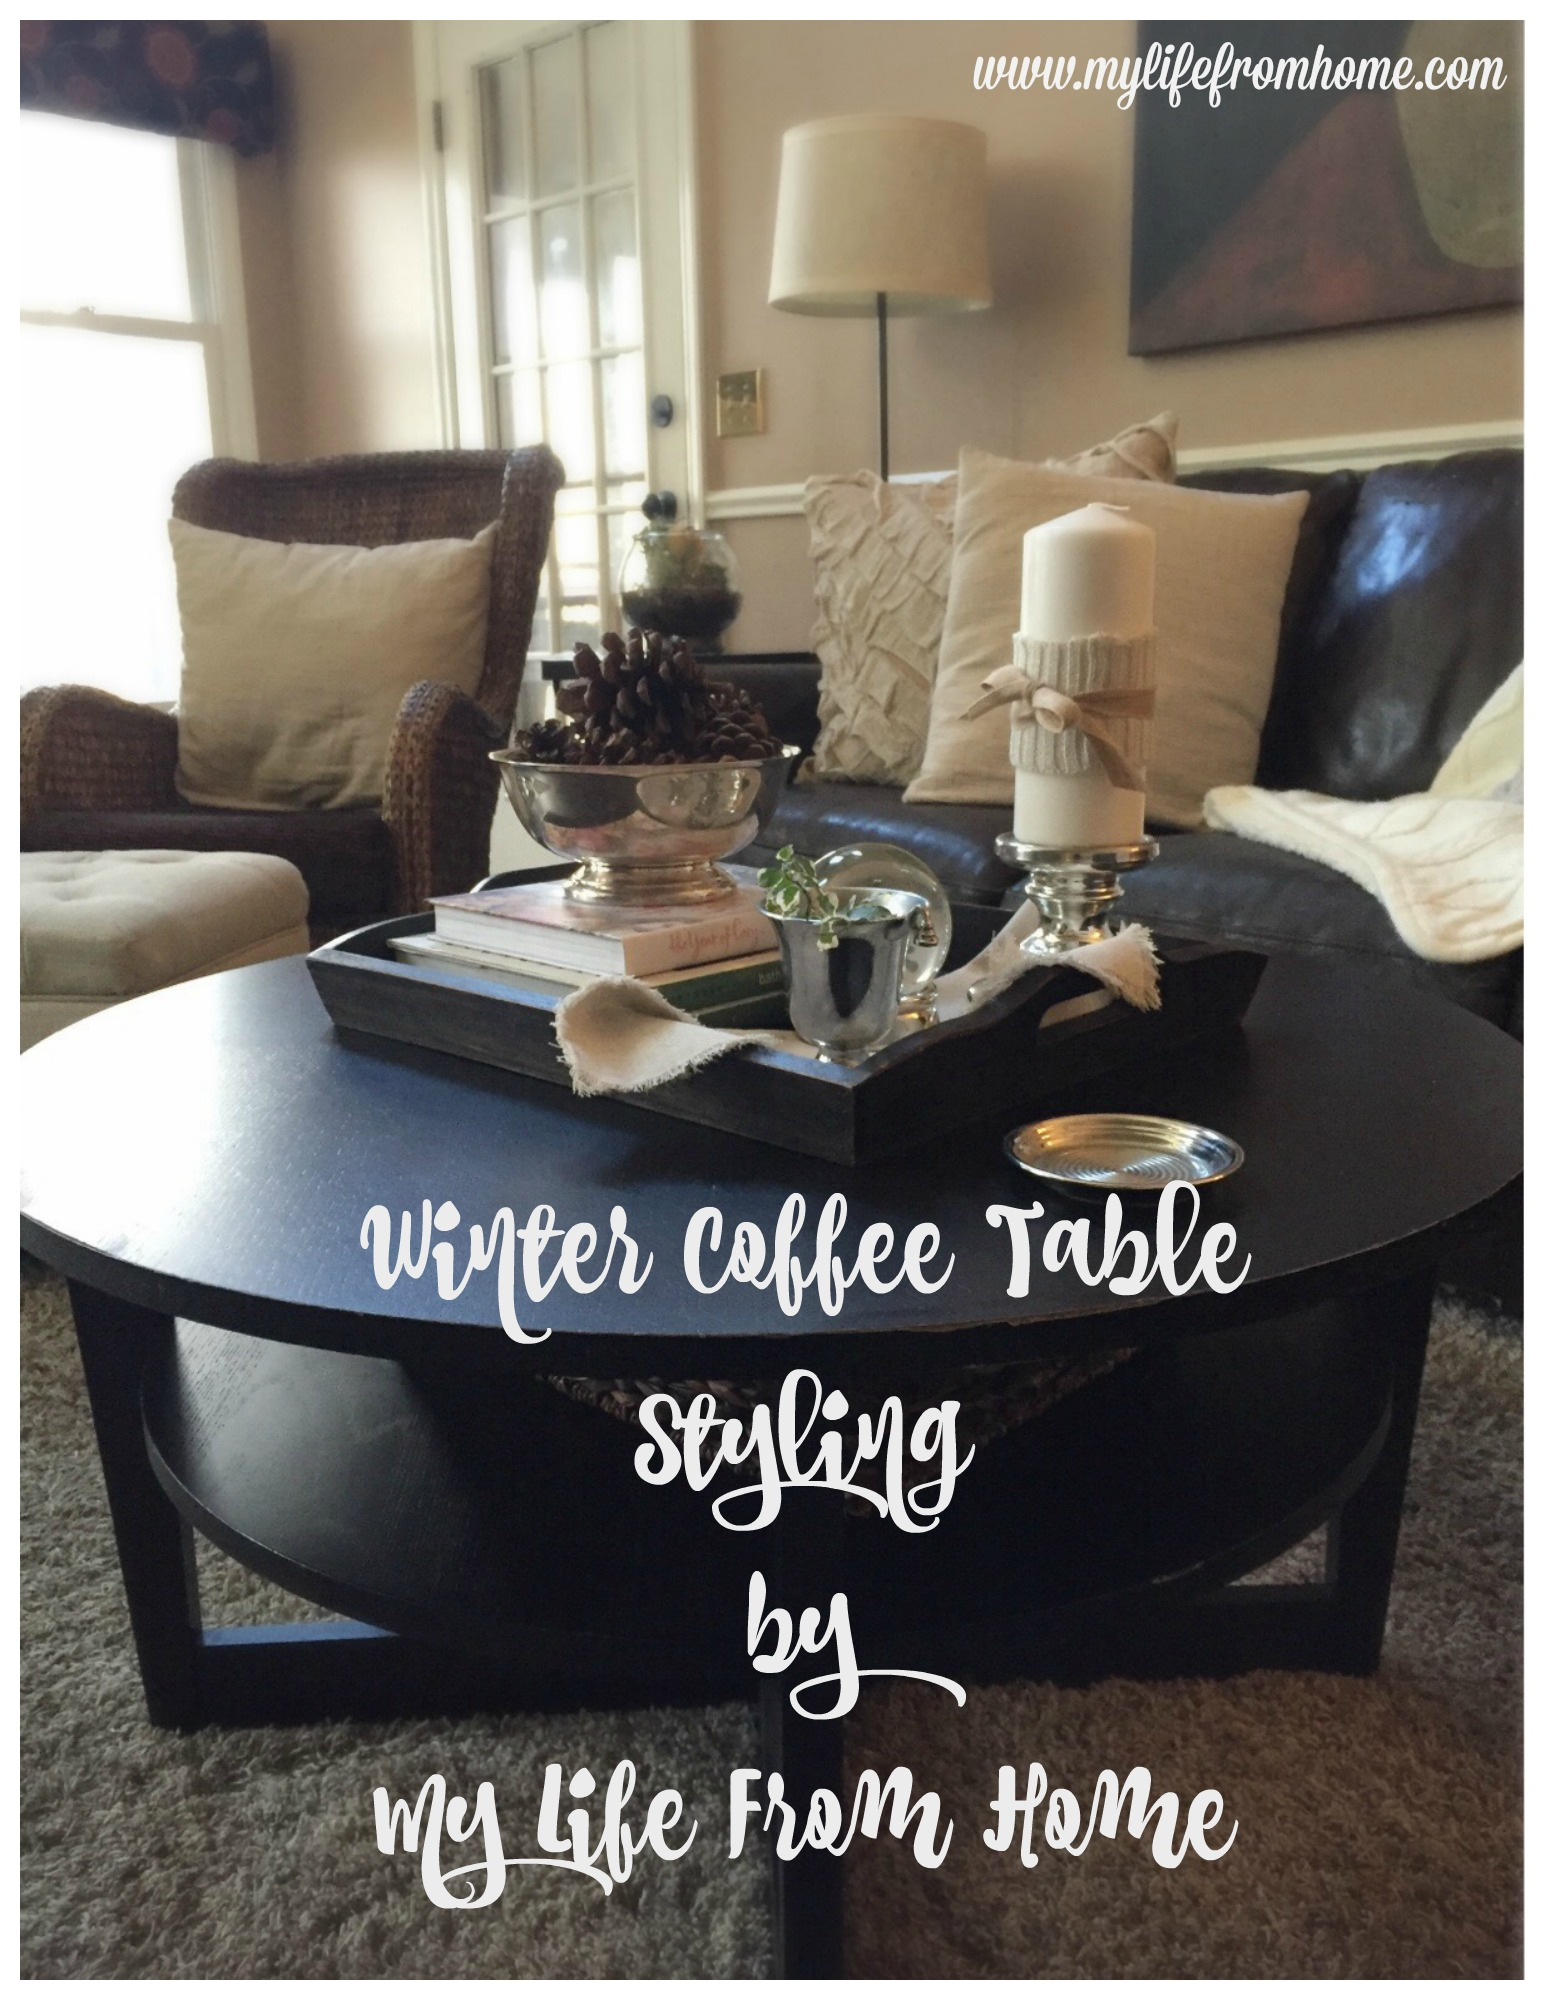 Winter Coffee Table Styling by www.mylifefromhome.com